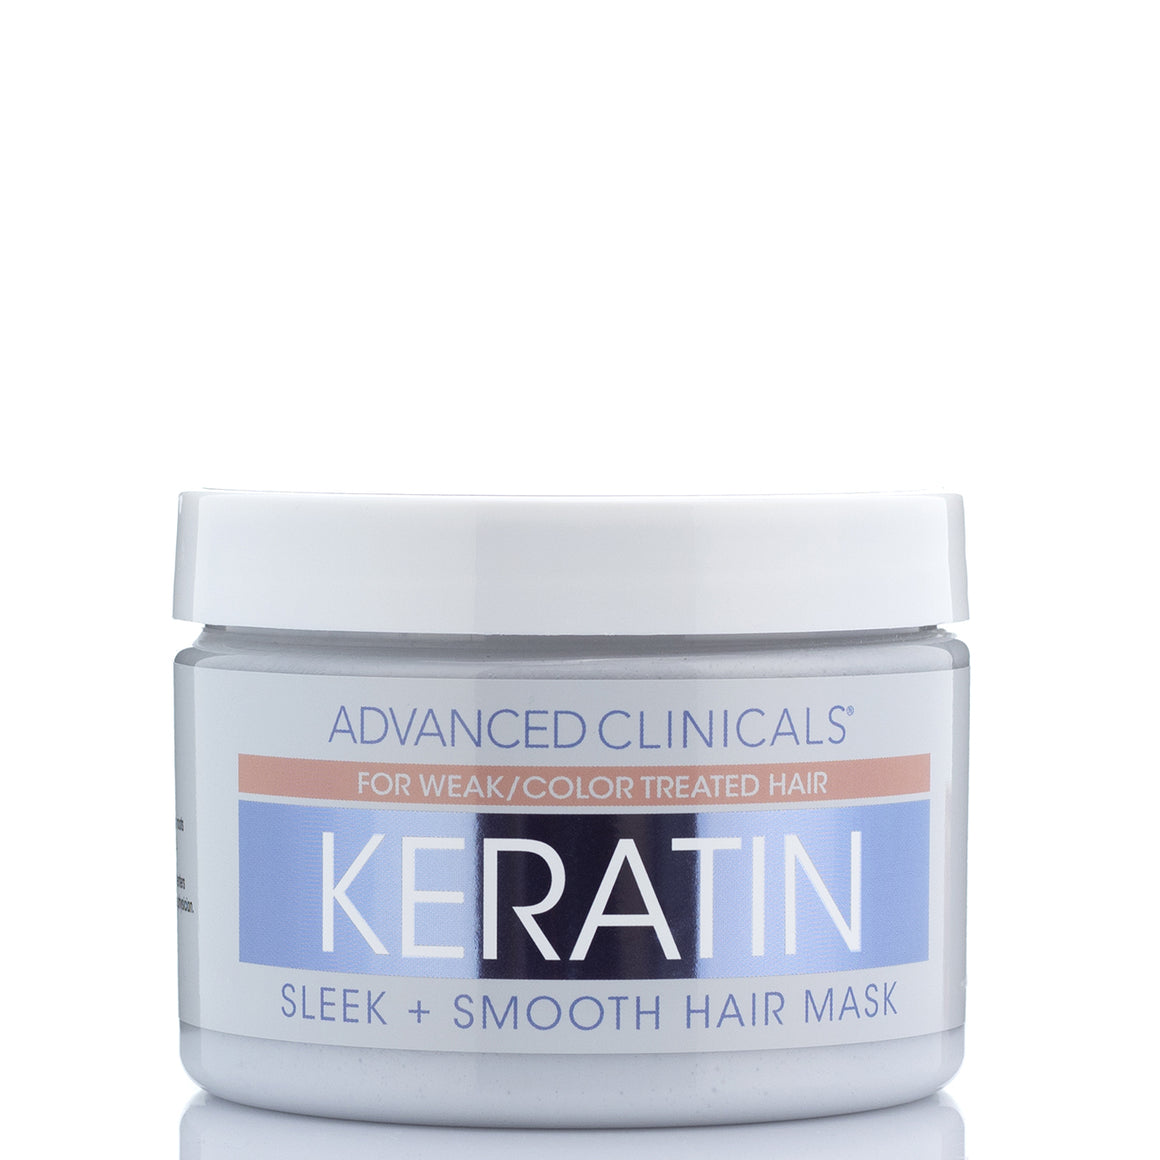 Keratin Hair Repair Mask